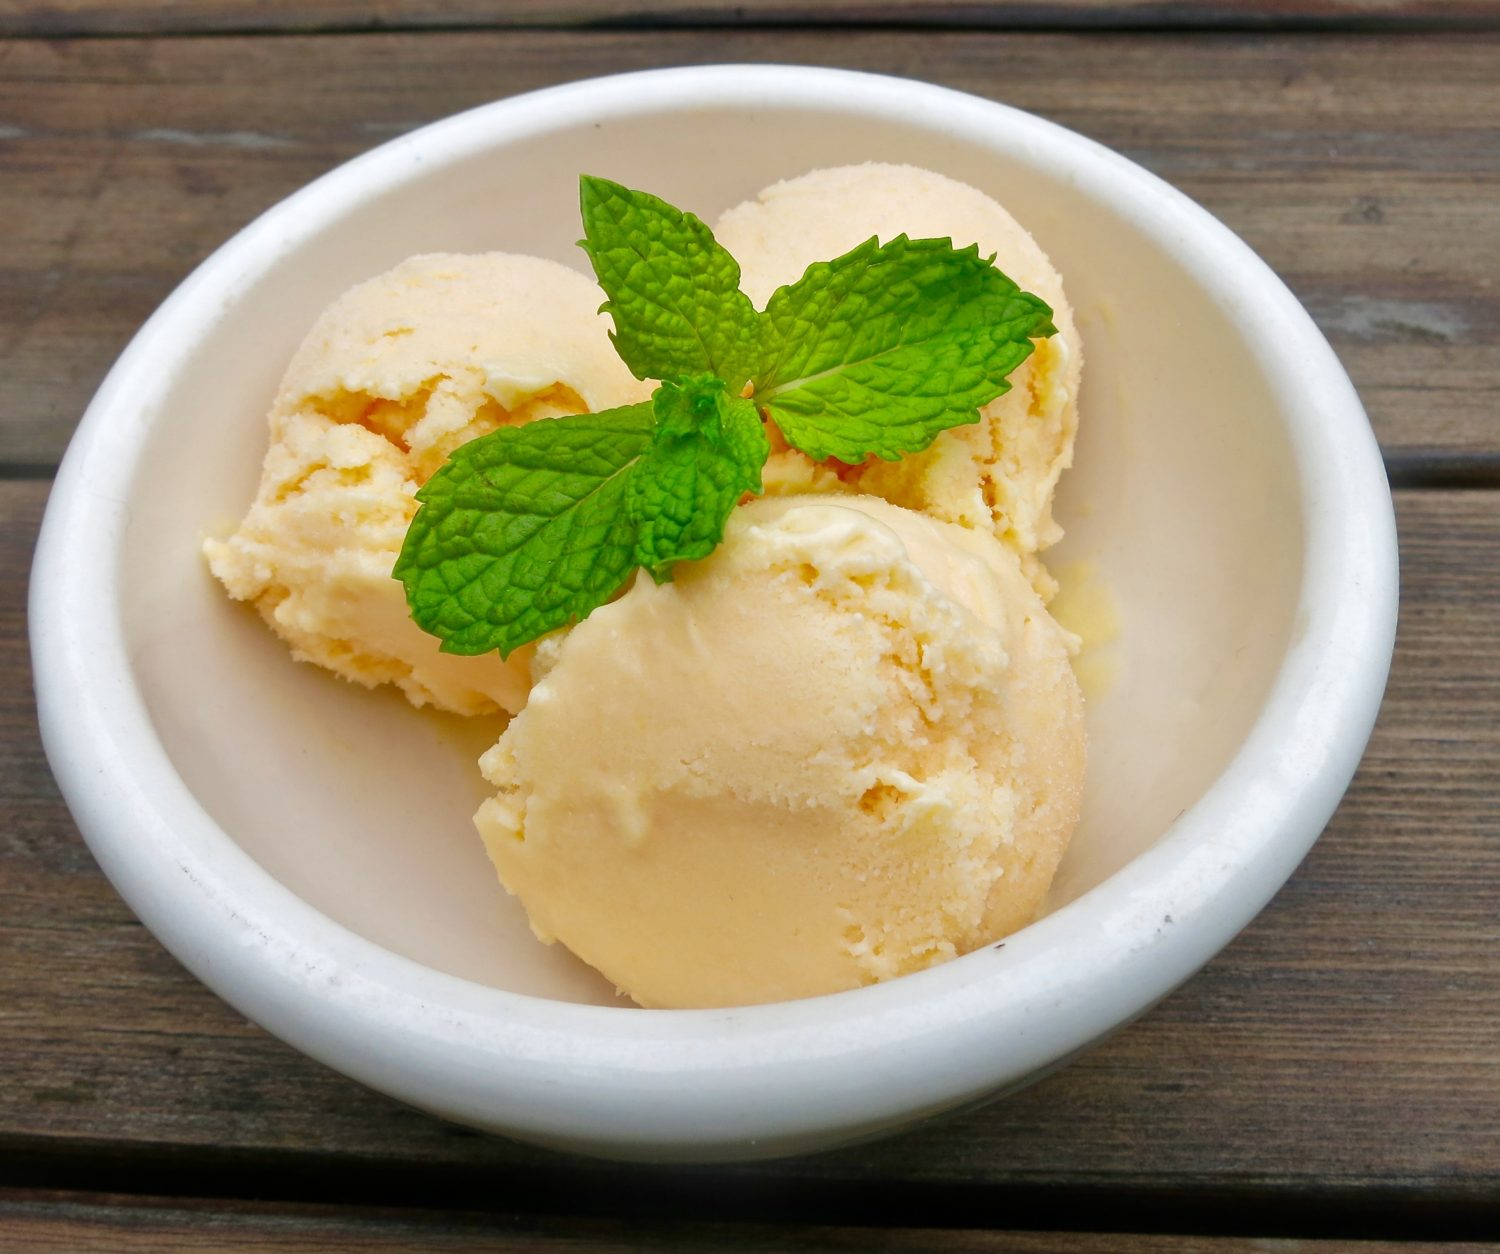 ice cream with mint leaves